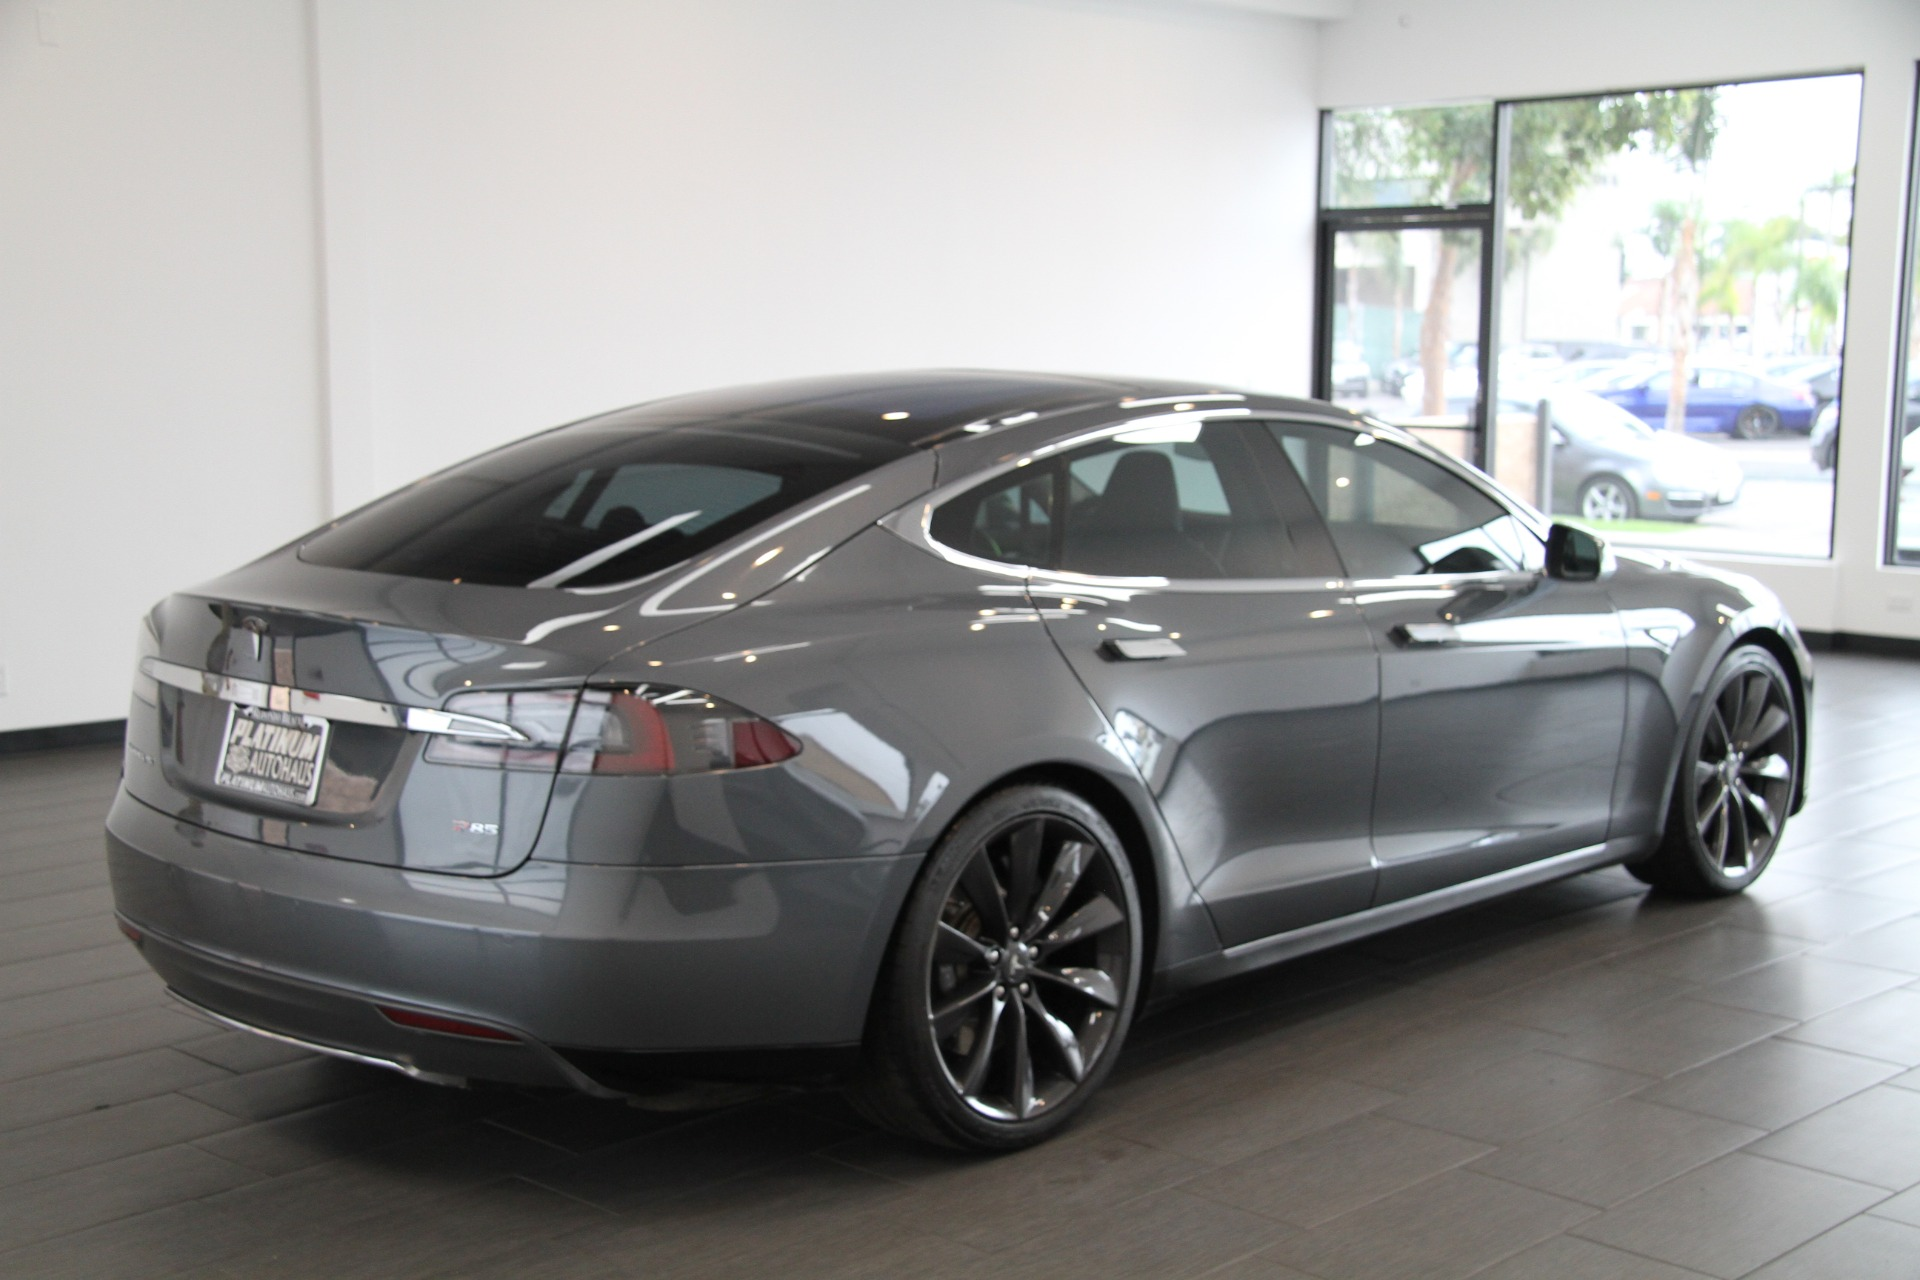 2013 tesla model s p85 stock 6095 for sale near redondo beach ca ca tesla dealer. Black Bedroom Furniture Sets. Home Design Ideas